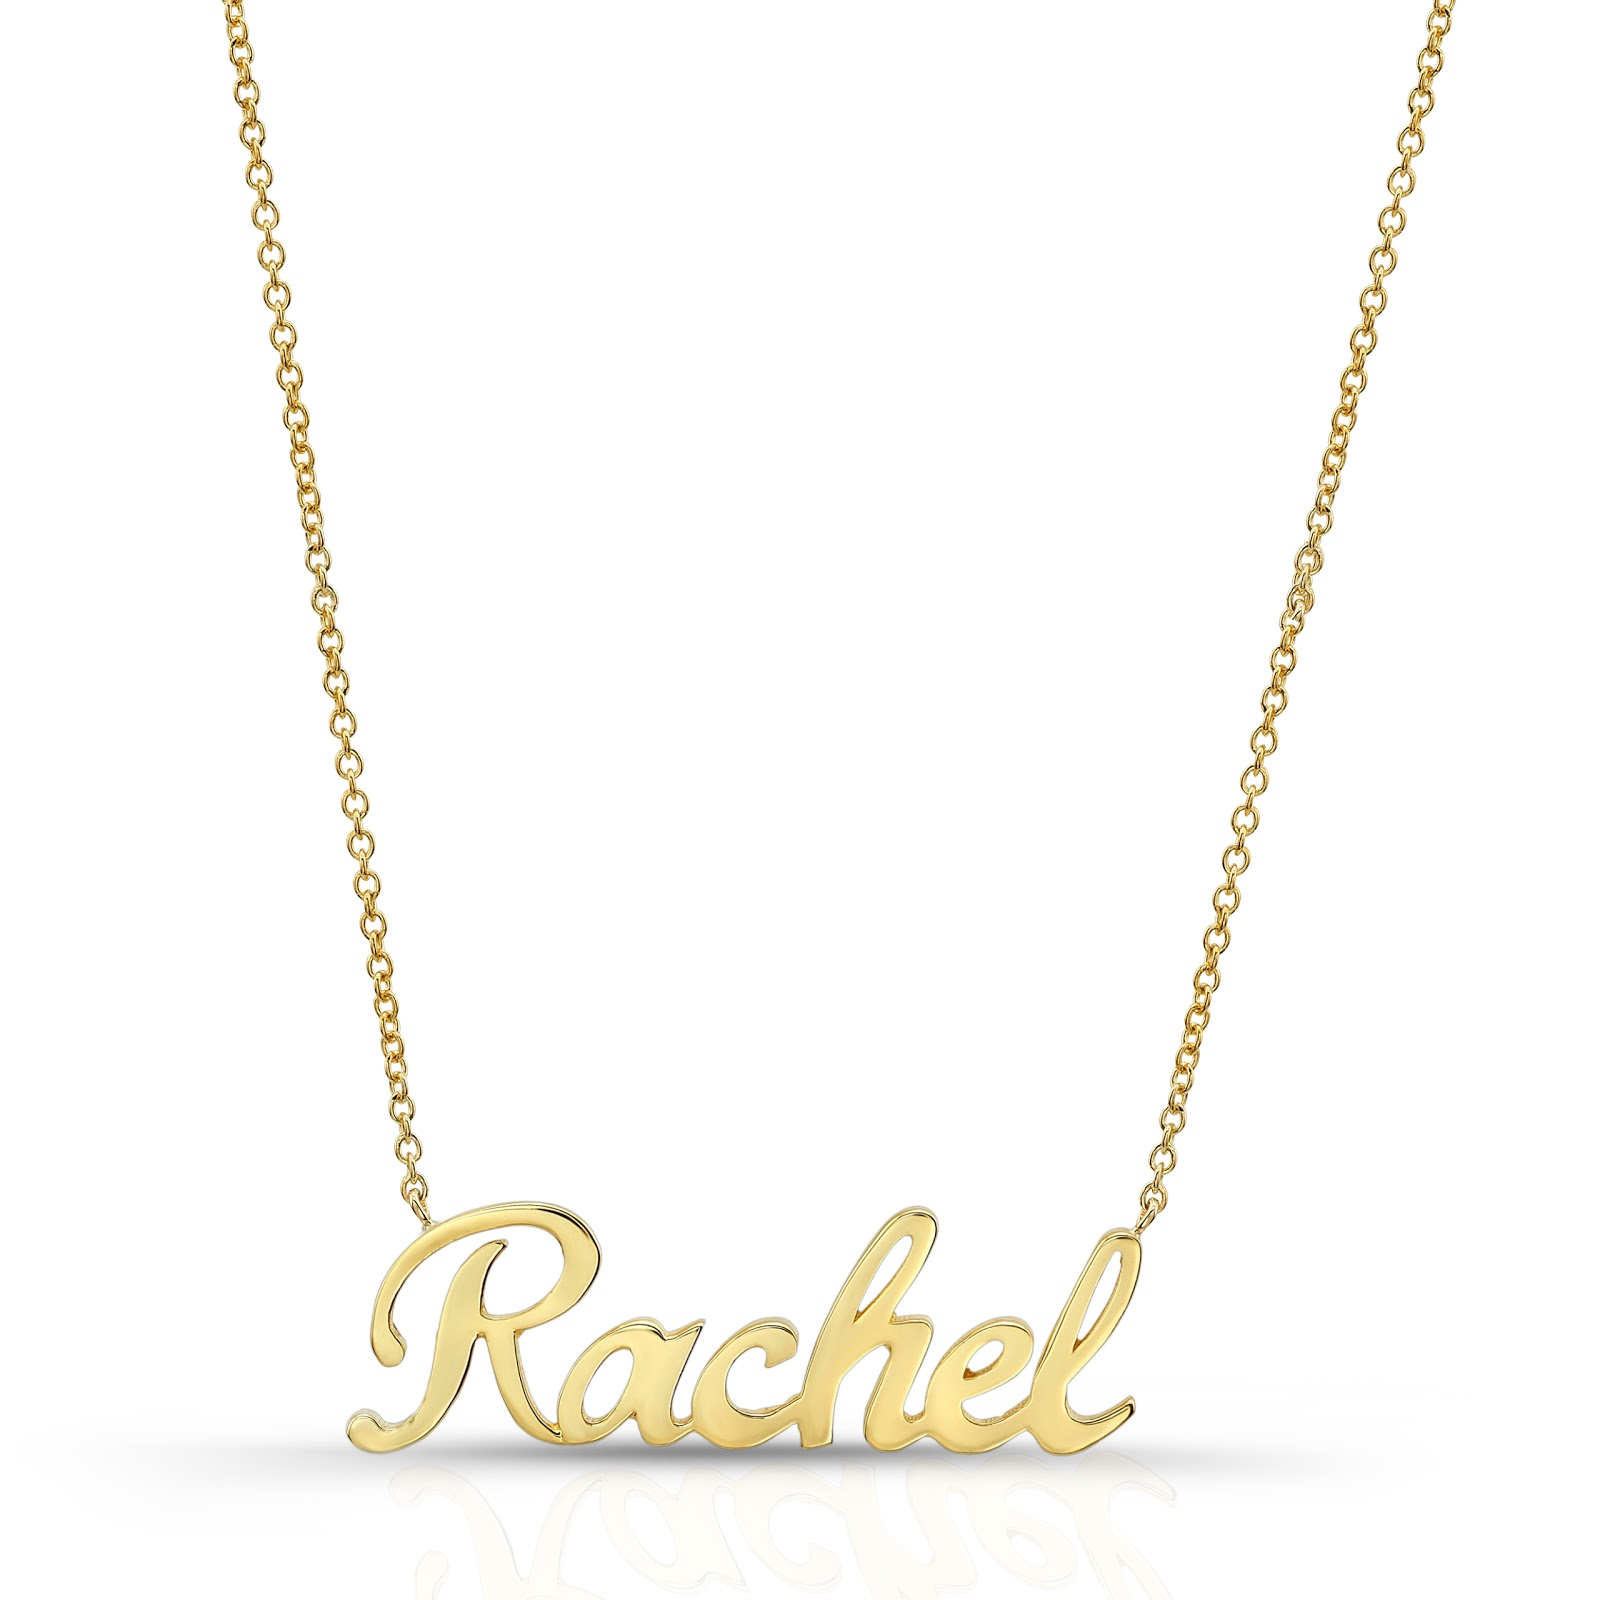 win it glee fashion s nameplate necklace